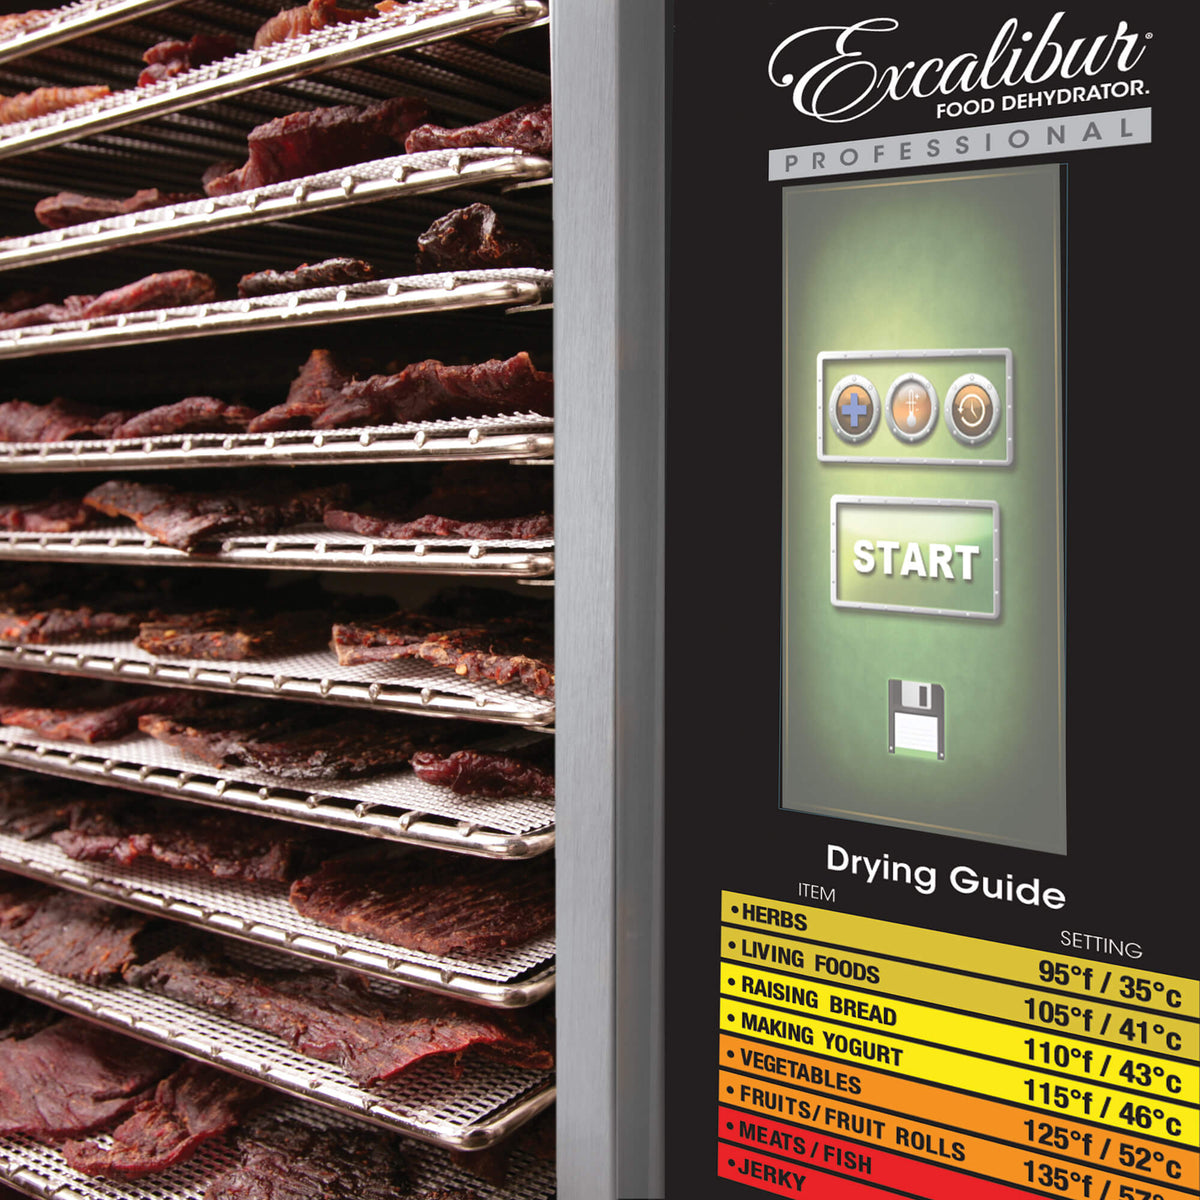 Excalibur COMM1 12 tray stainless steel commercial digital dehydrator control panel with jerky on the trays.